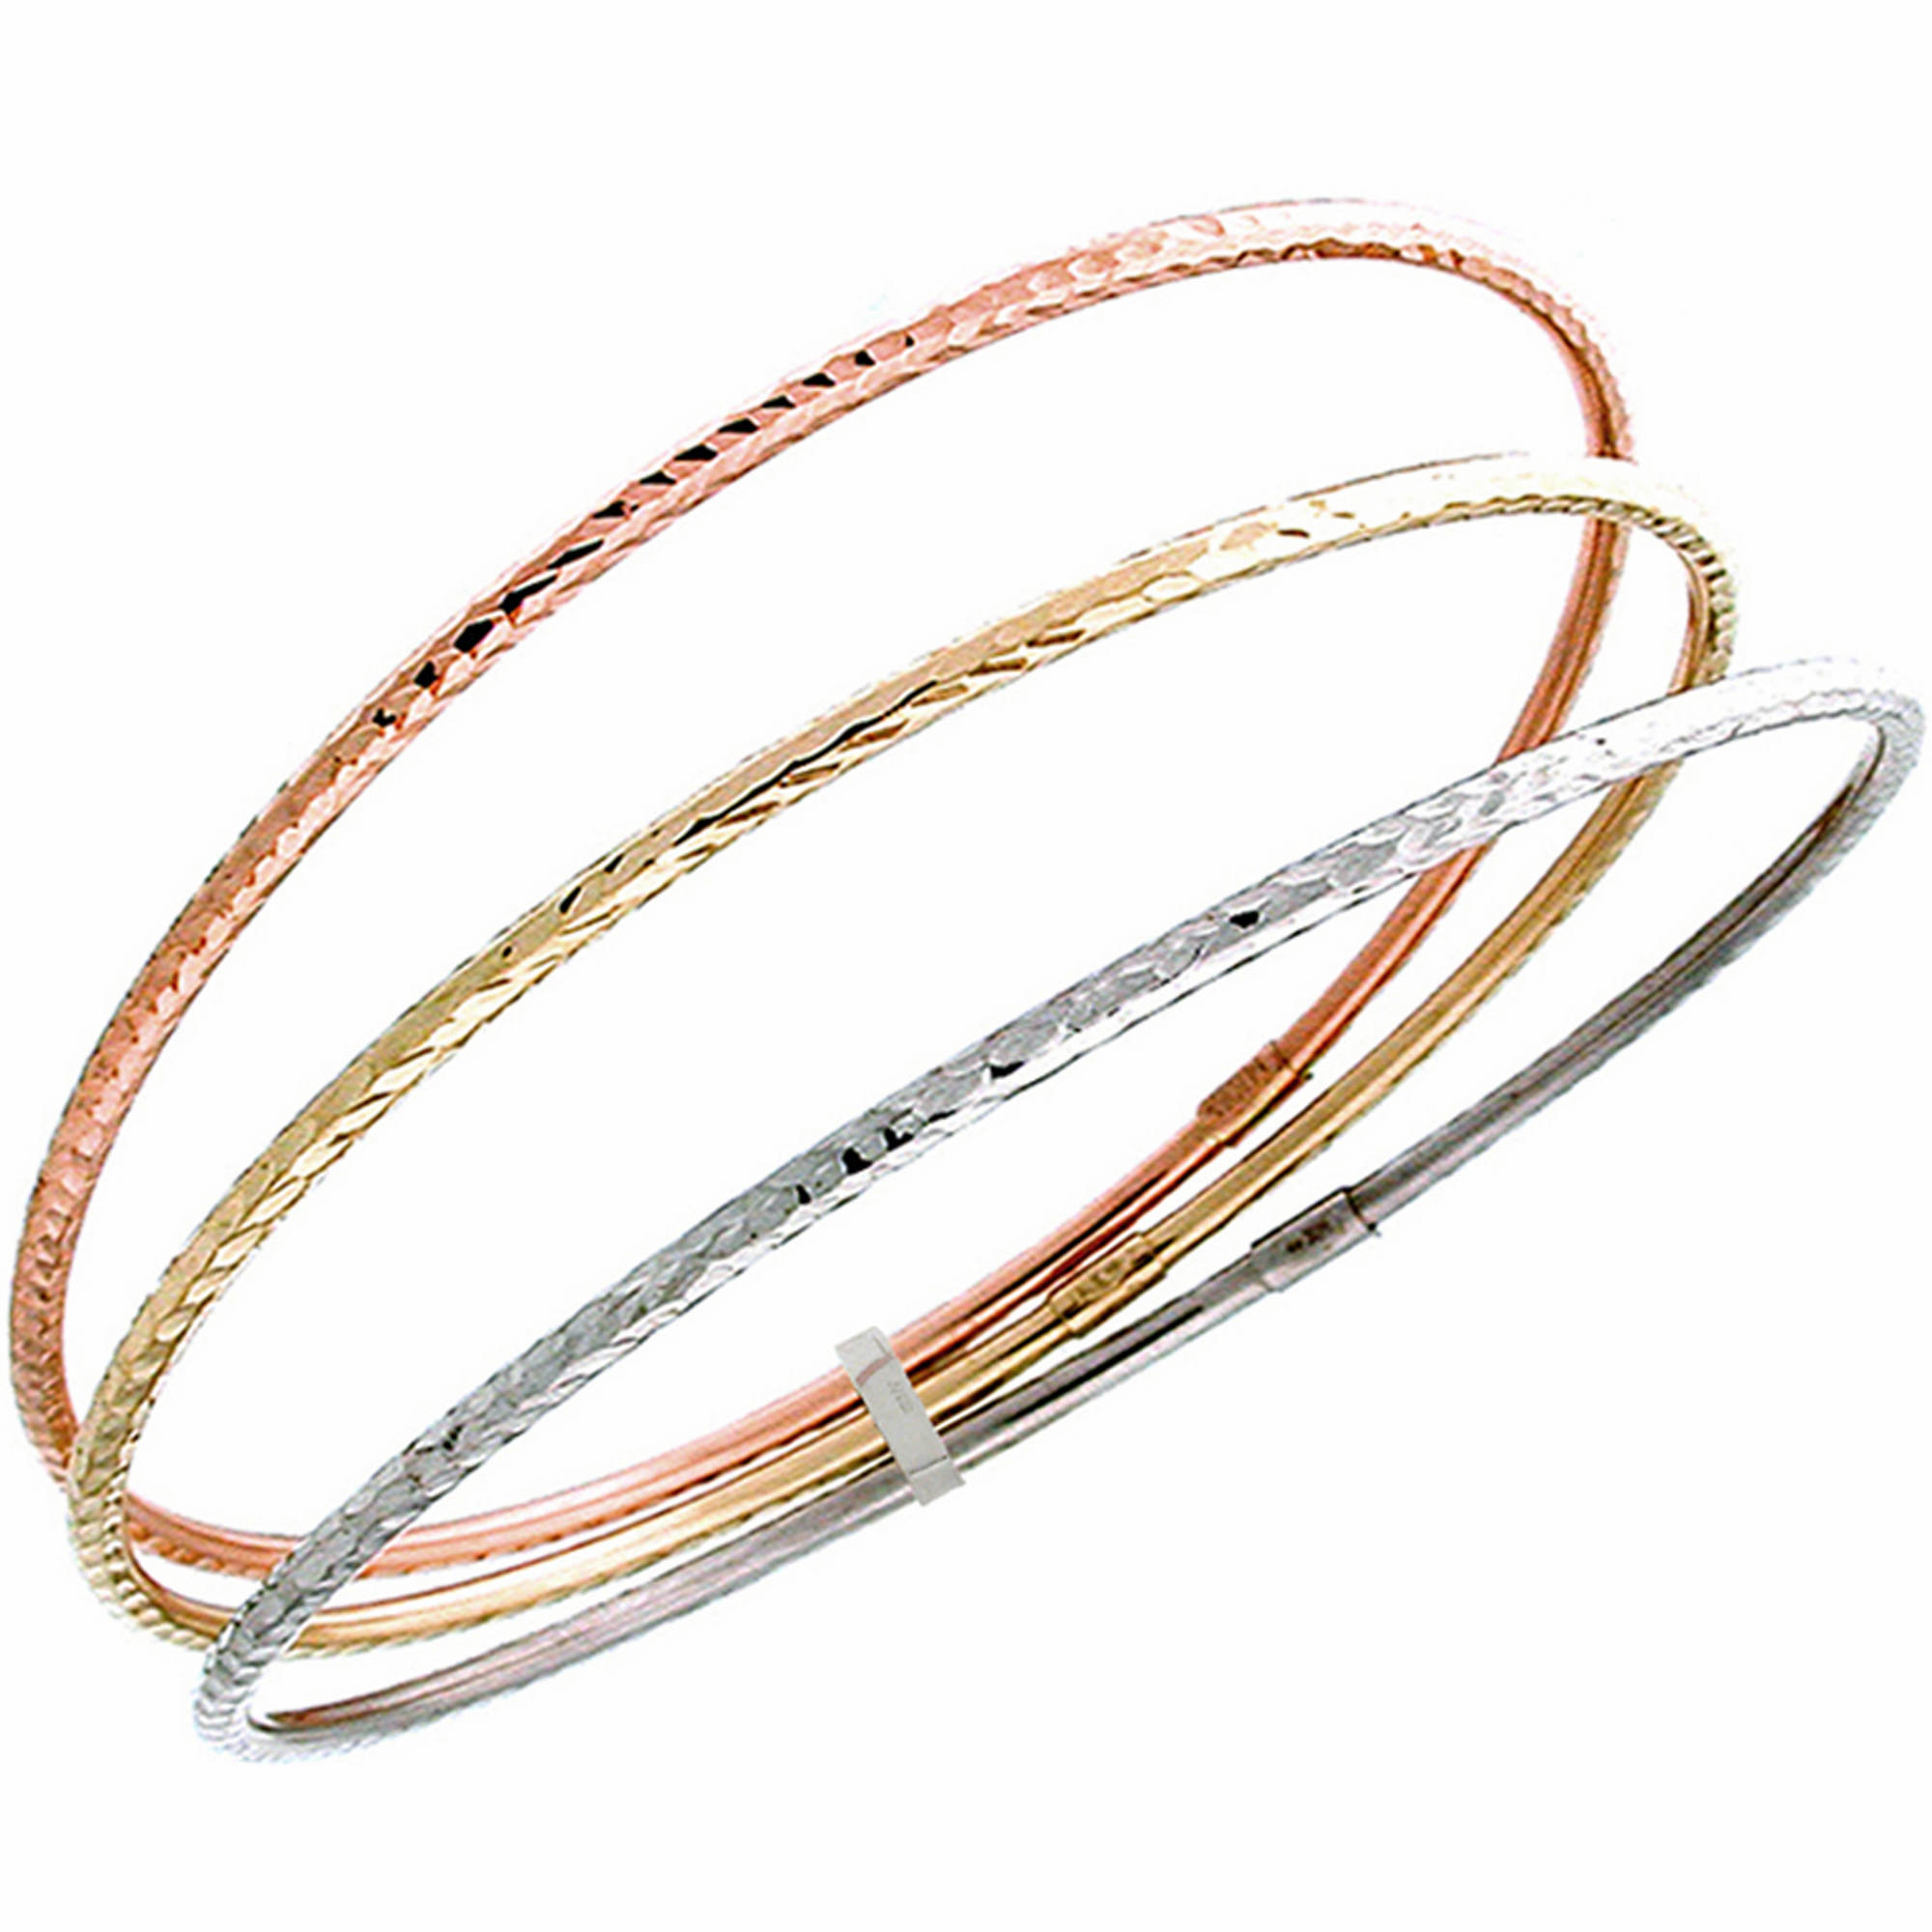 bangles club recipeid imageservice bracelet colored tri profileid bjs wholesale imageid bangle gold row product